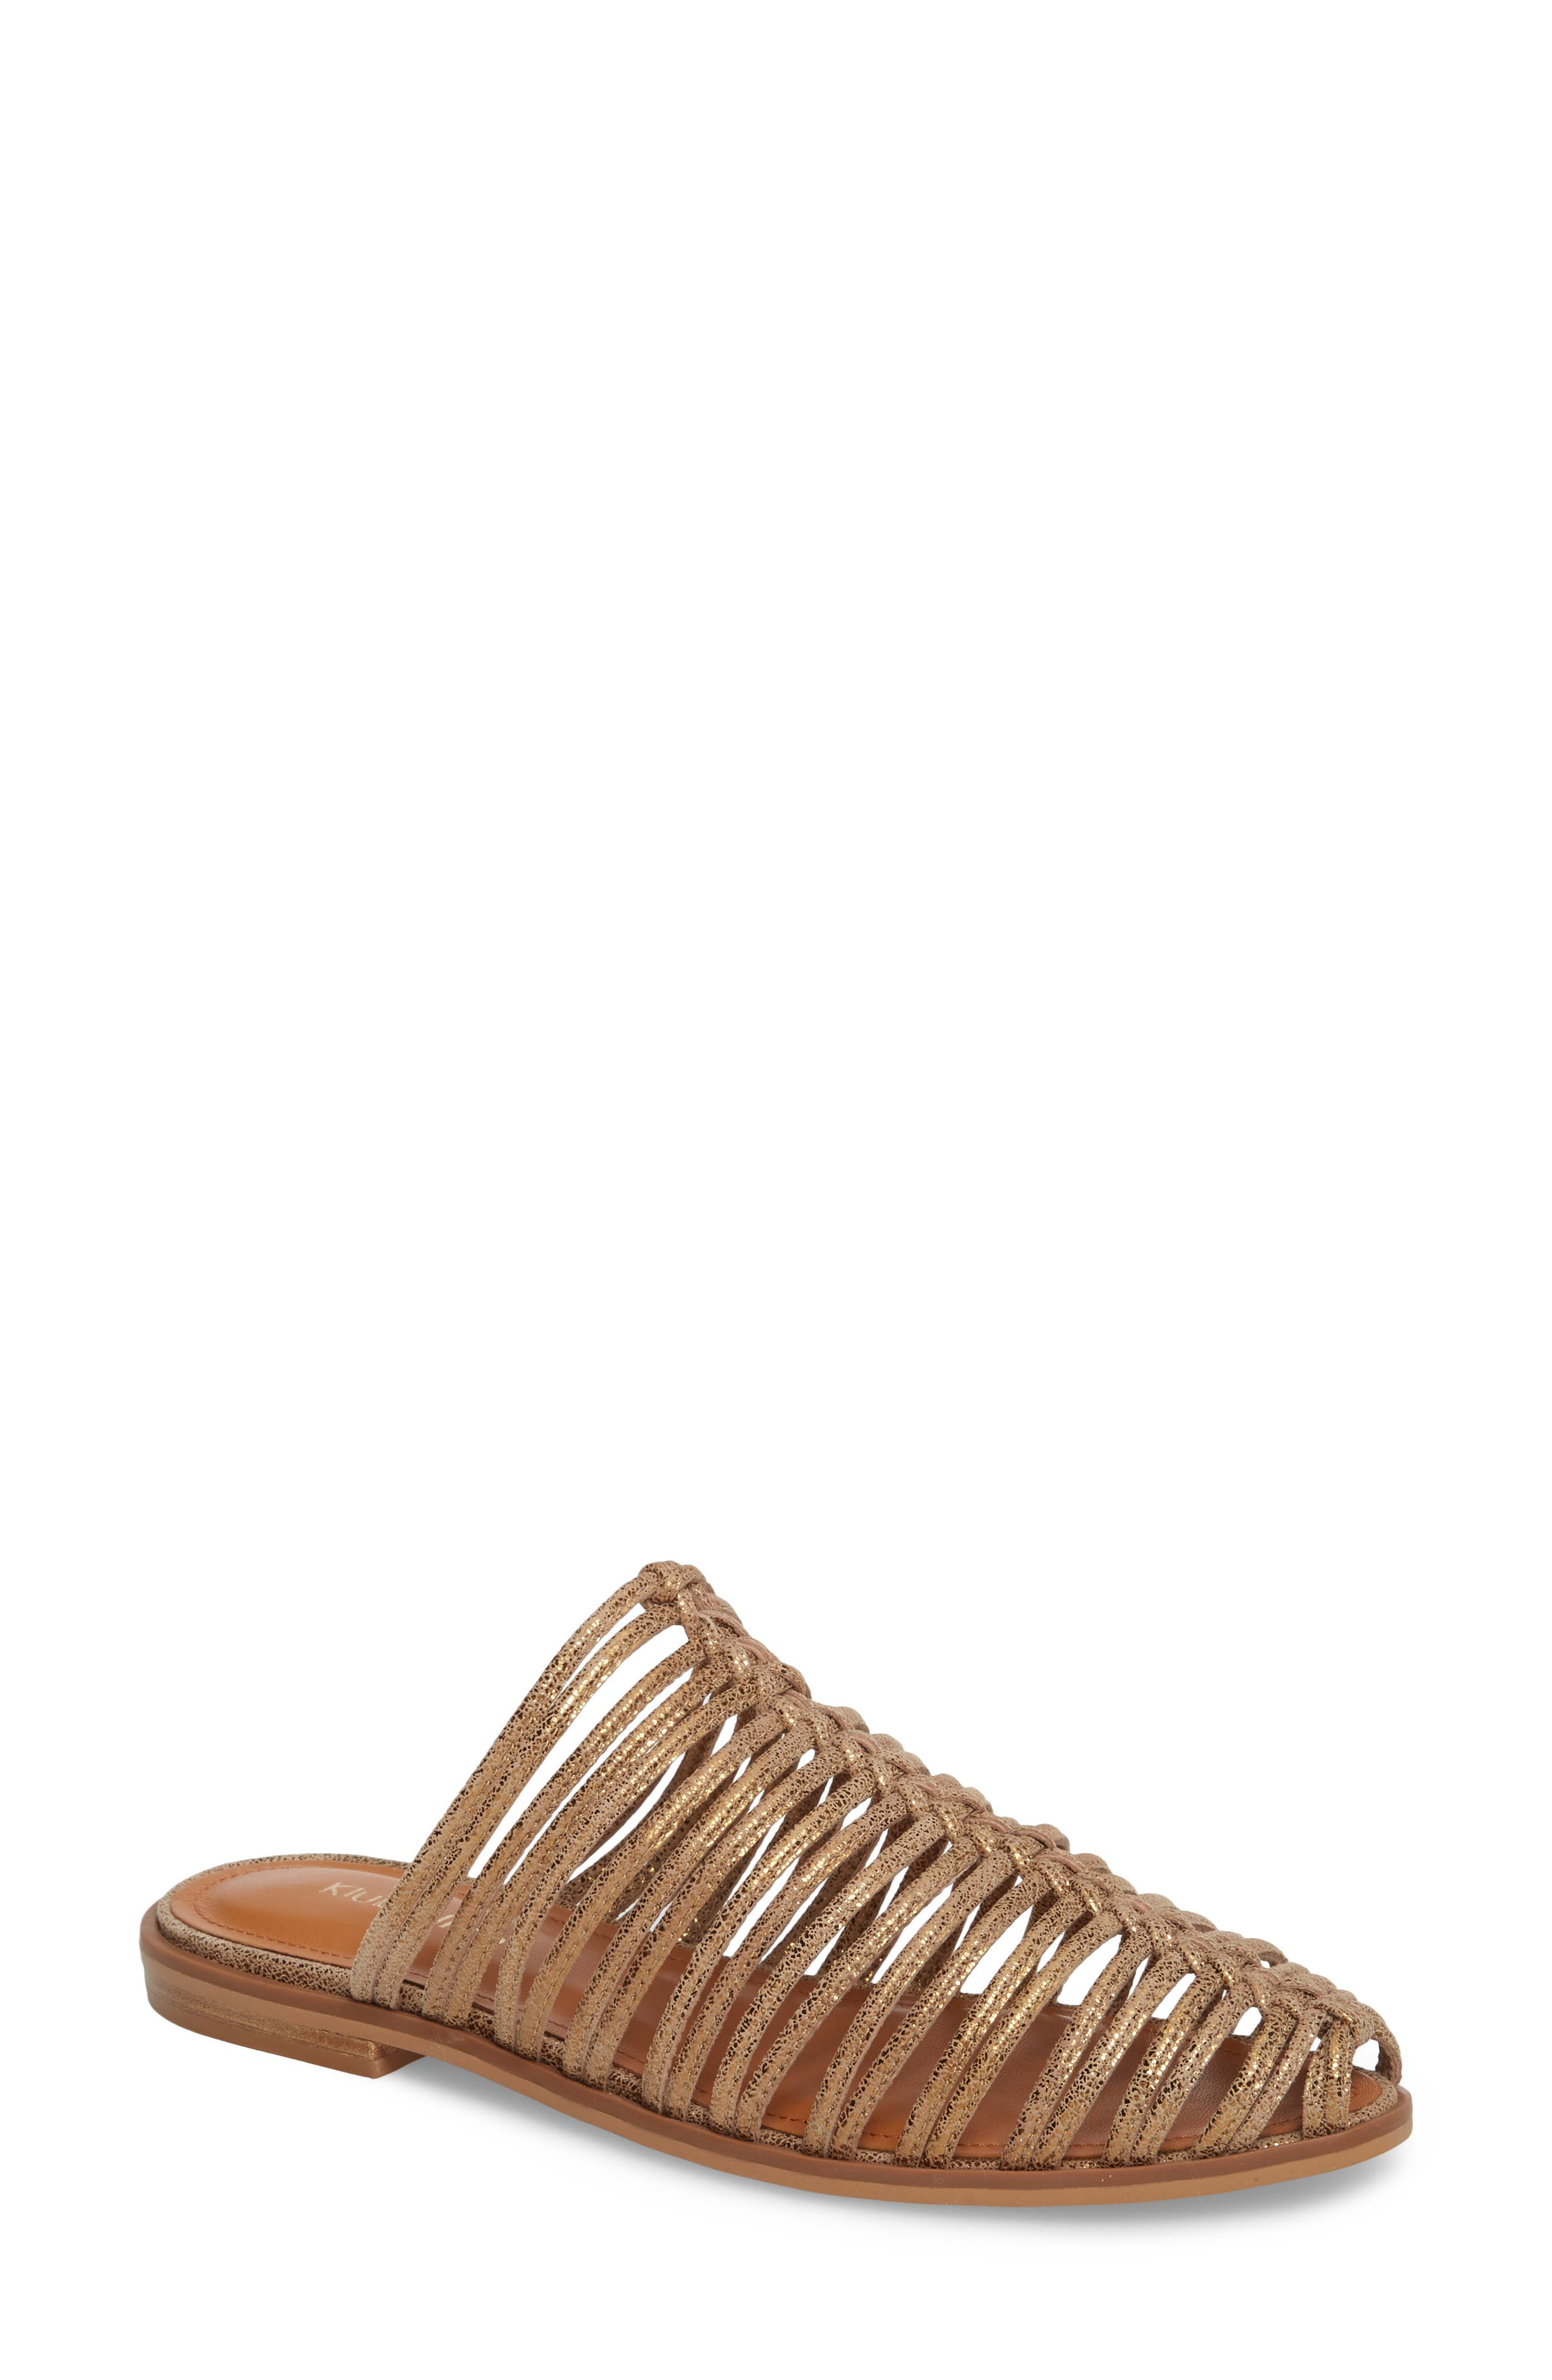 Geonna Sandal,                             Main thumbnail 1, color,                             Bronze Suede